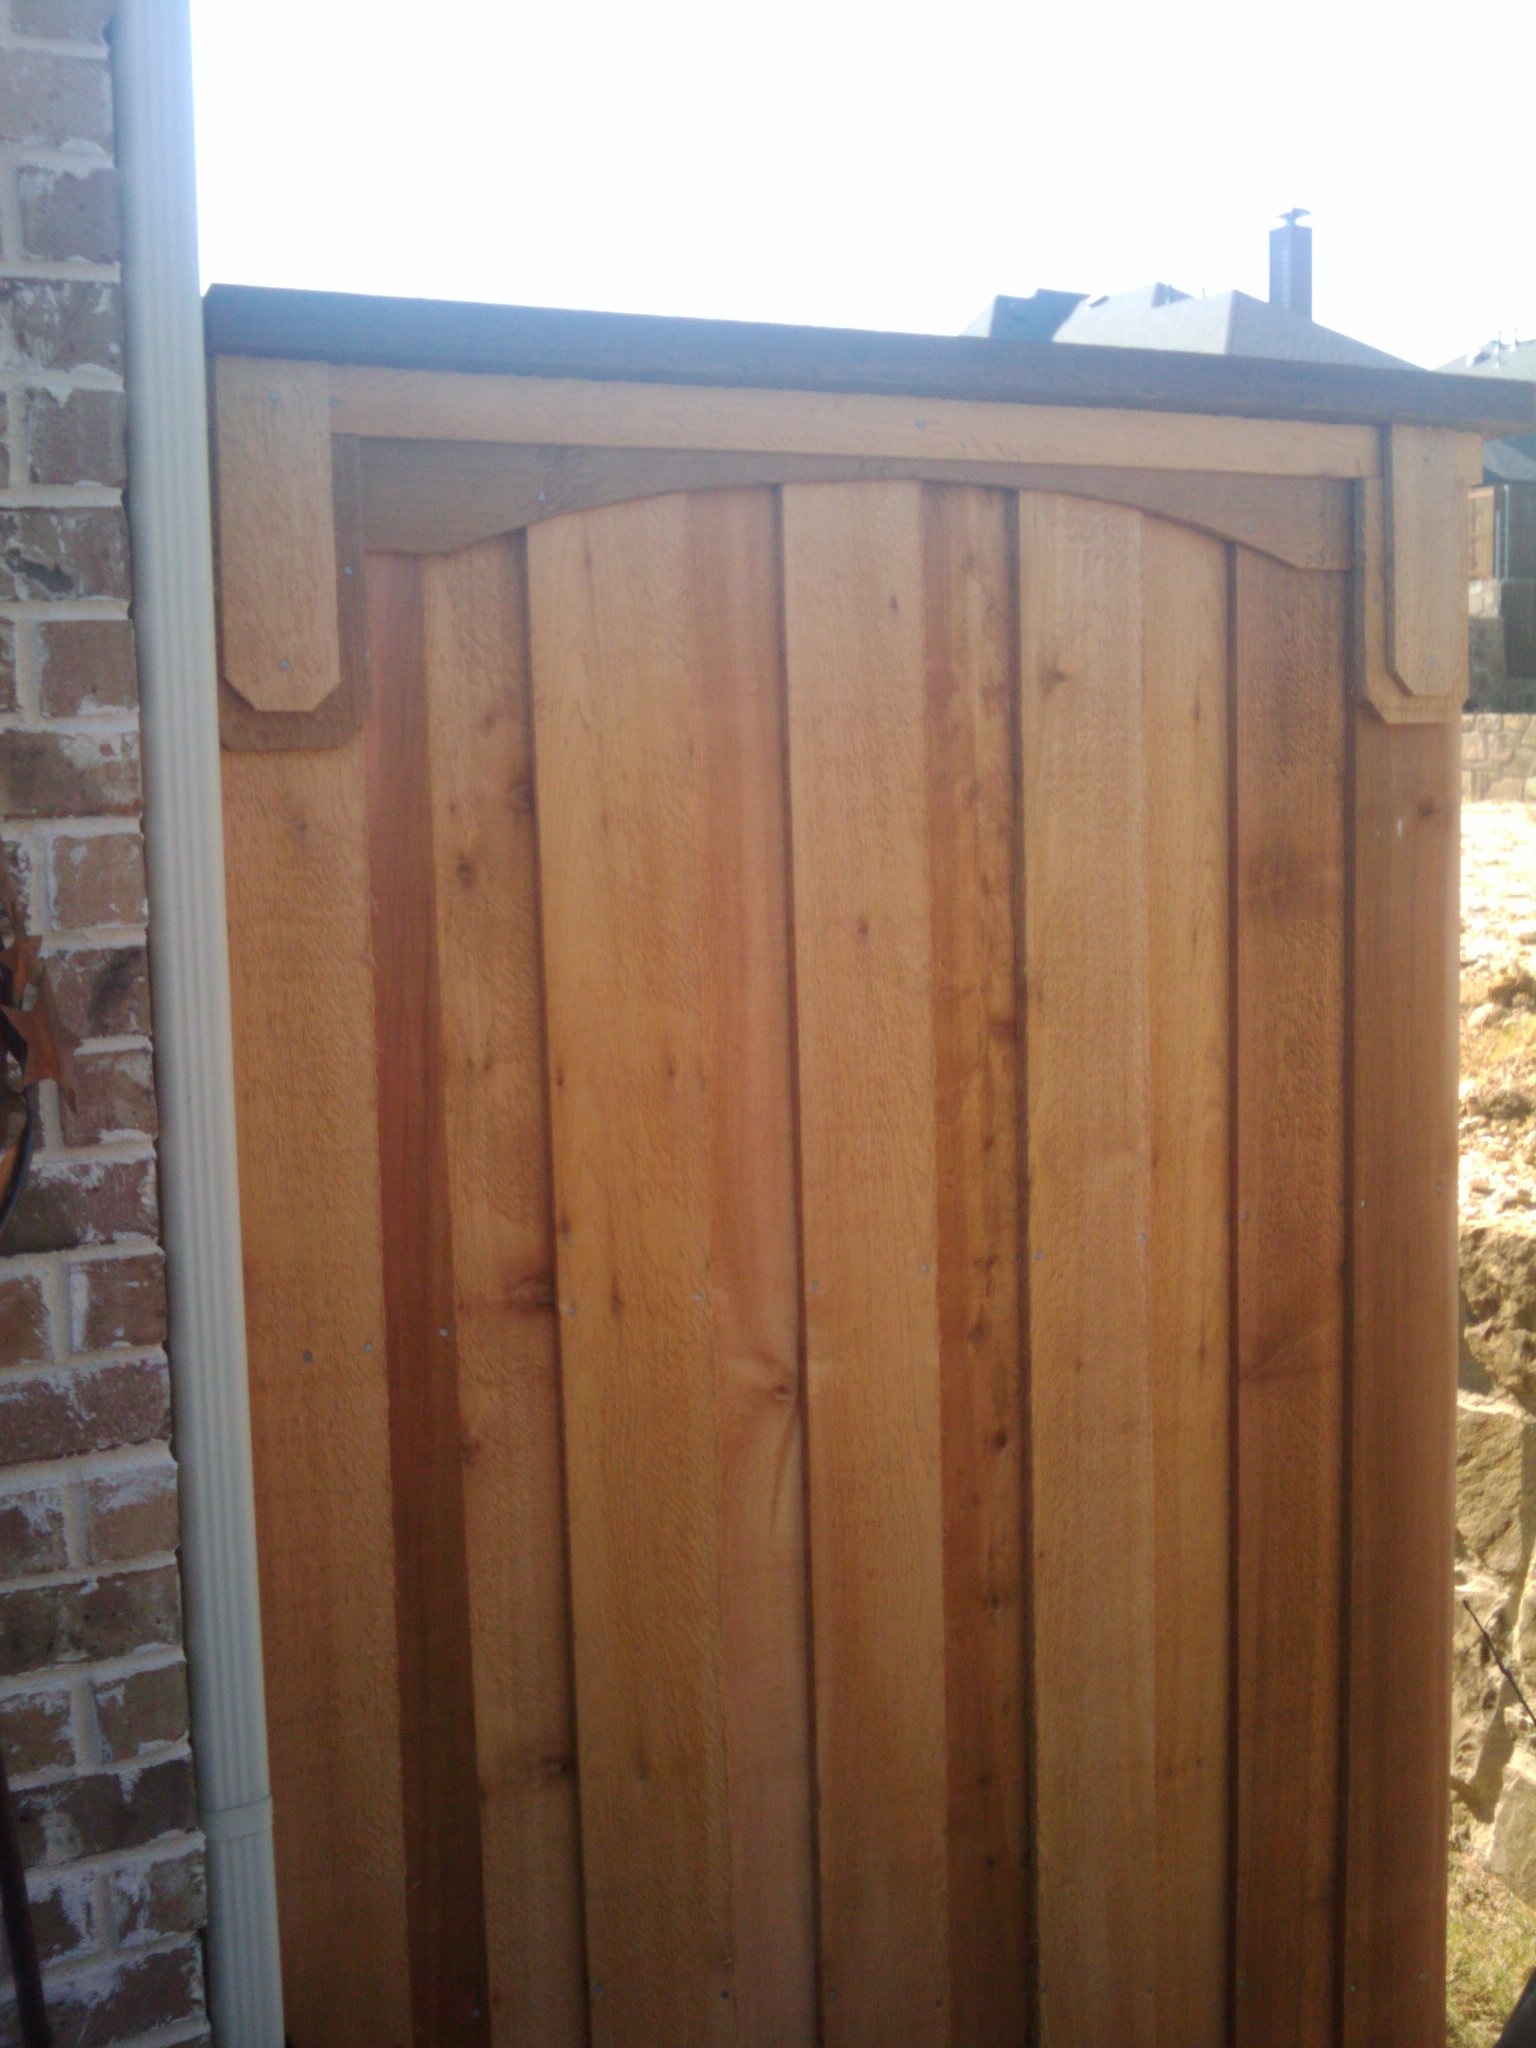 A trash can screen fence fences decks by t campbell